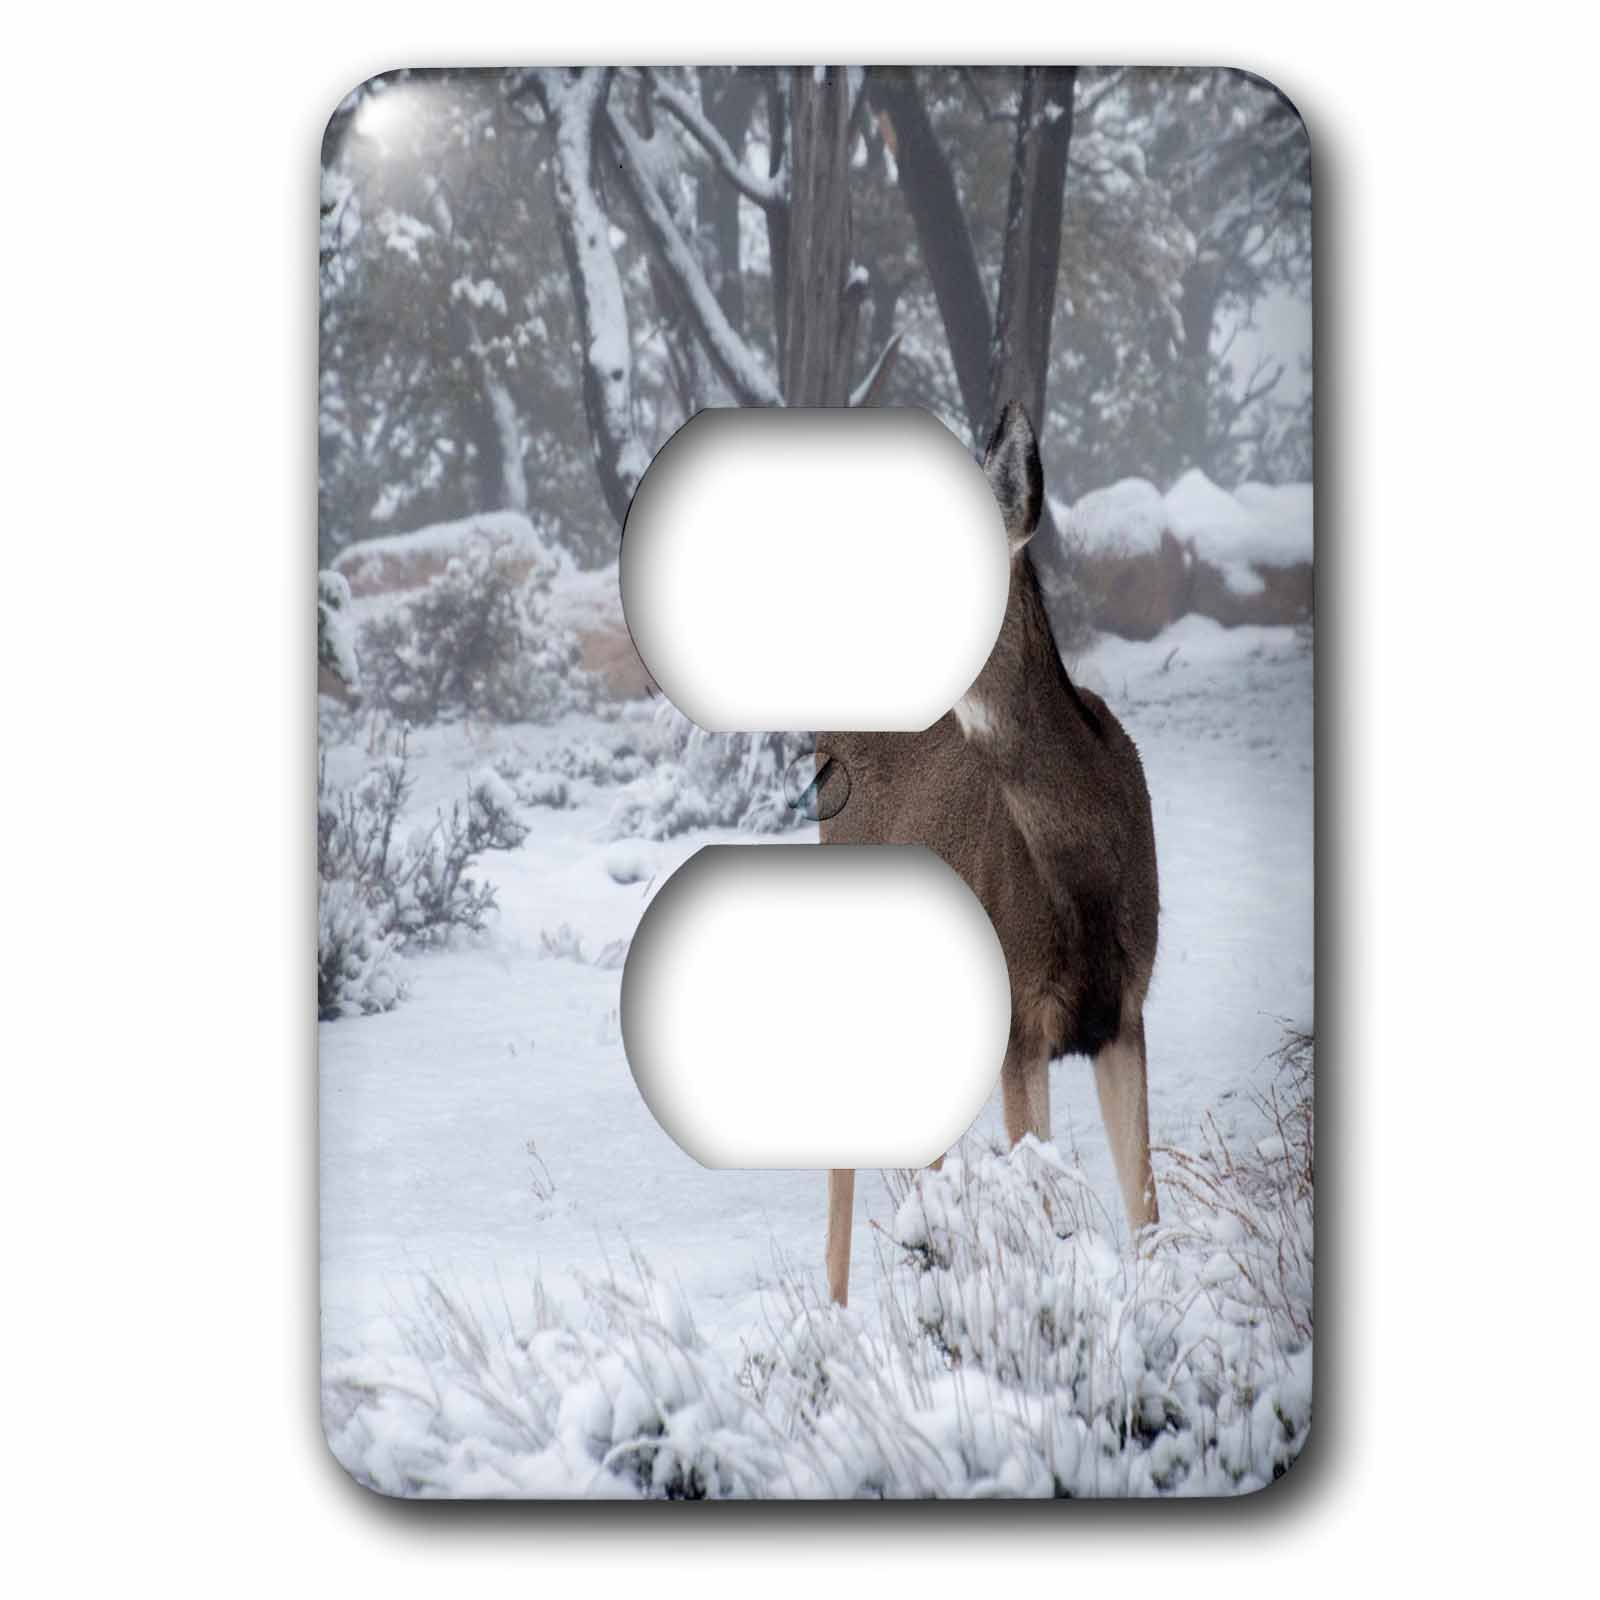 3dRose Danita Delimont - Deer - USA, Arizona, Grand Canyon National Park. Doe in winter scenic. - Light Switch Covers - 2 plug outlet cover (lsp_278442_6) by 3dRose